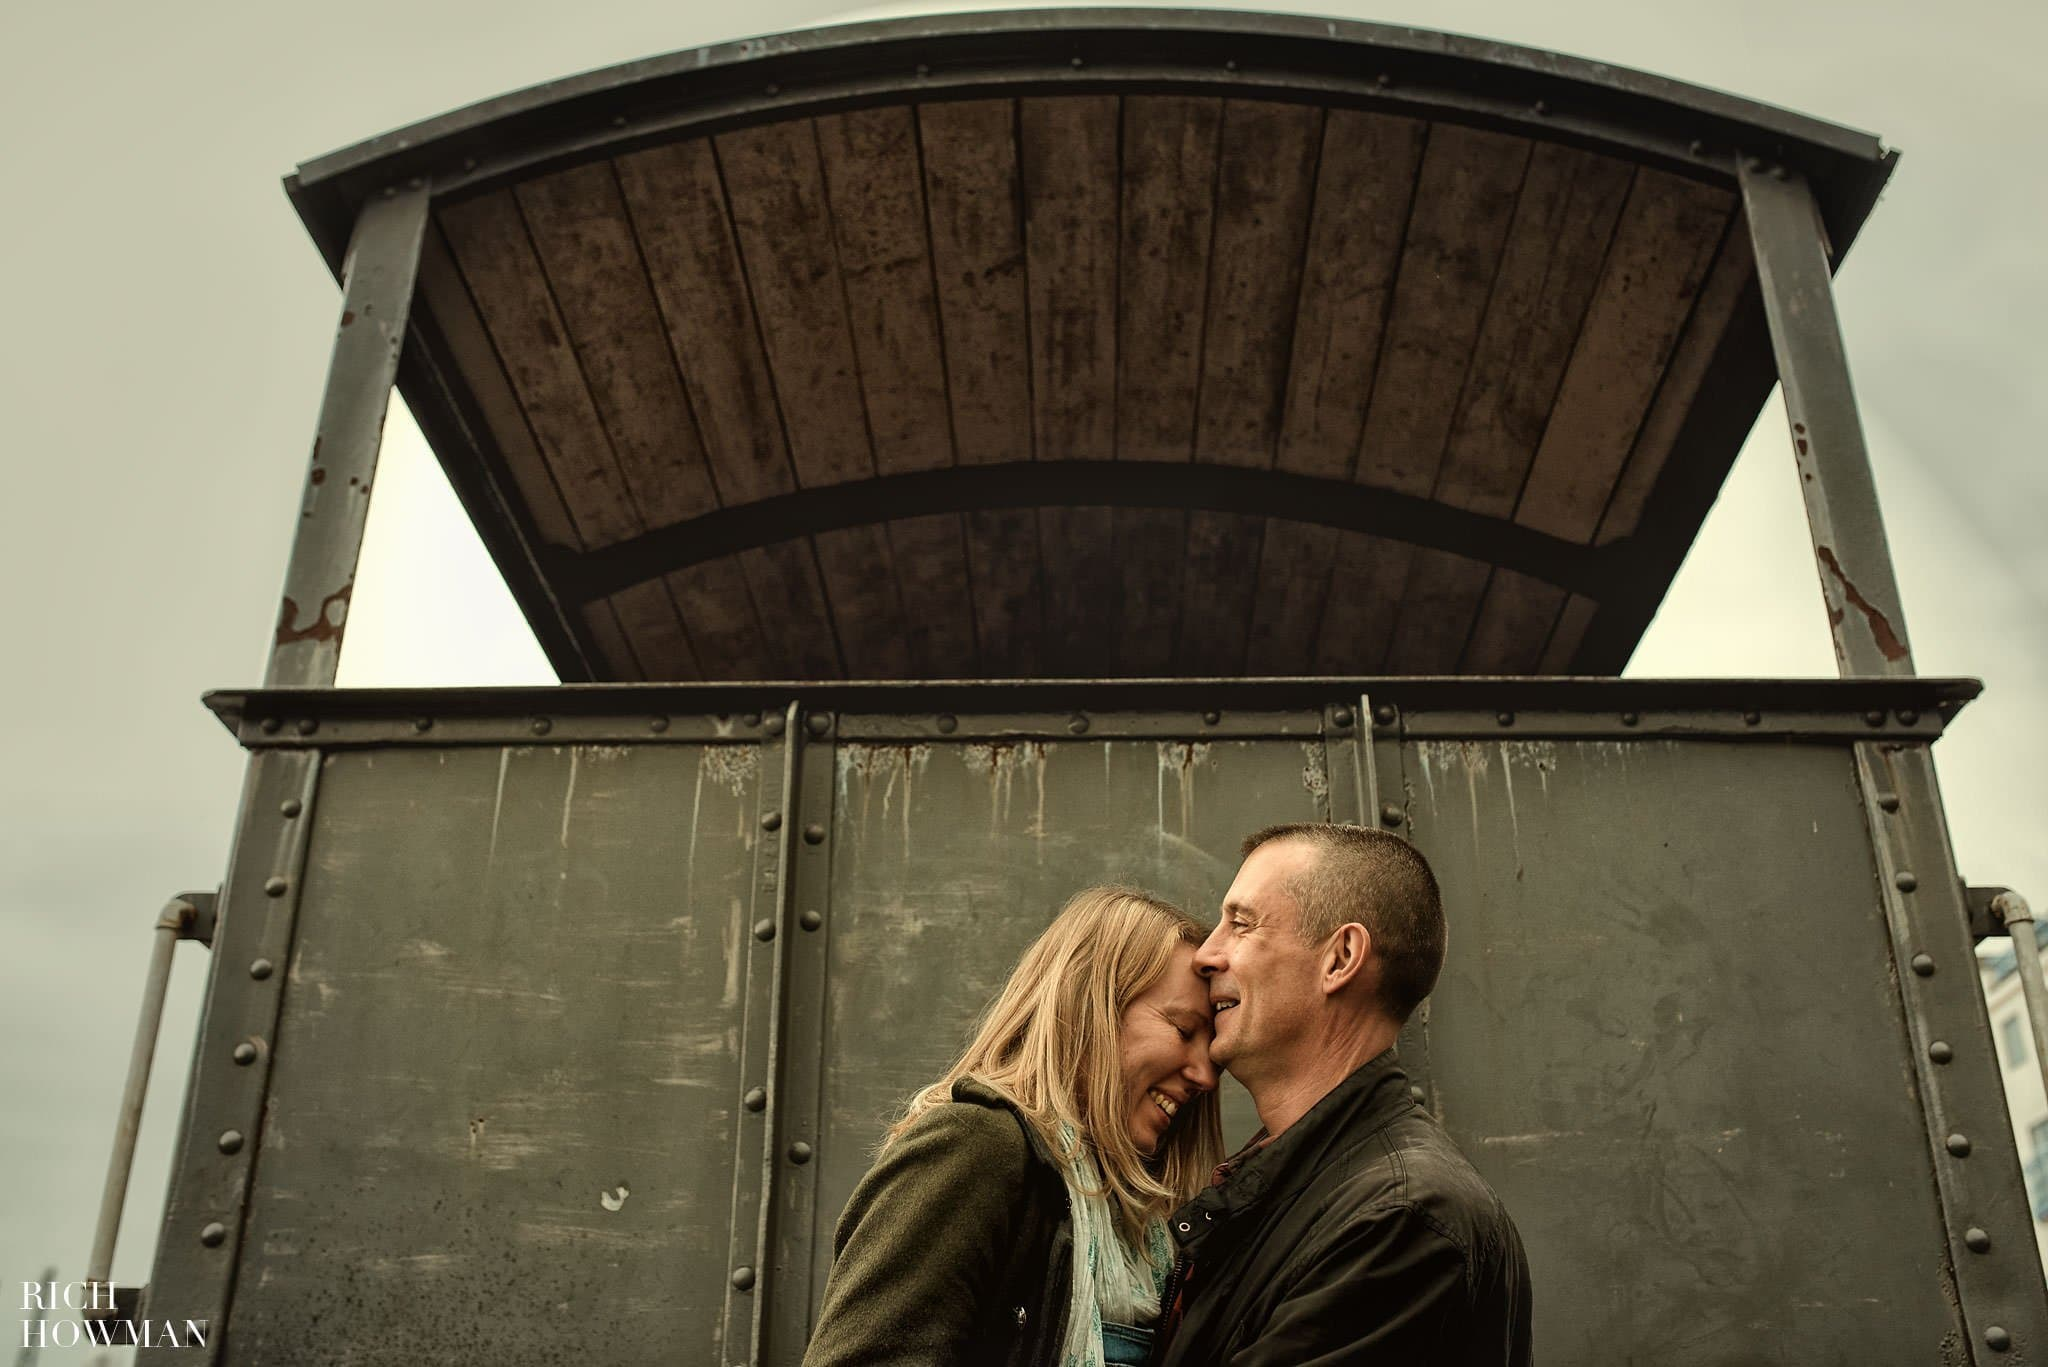 Bristol Harbourside engagement photography by photographer Rich Howman